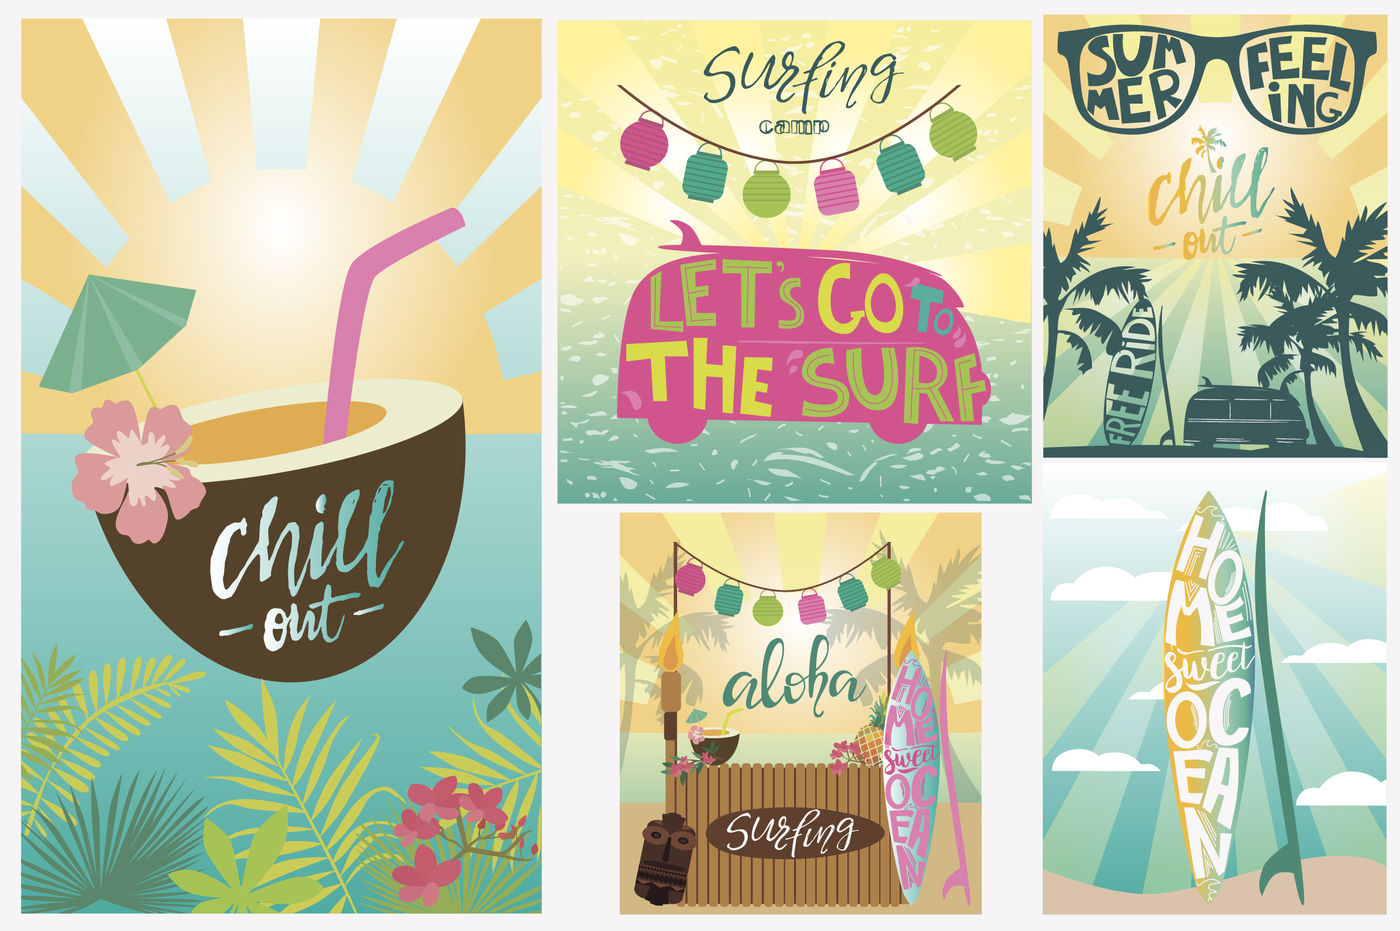 14 Surfing Logos Templates 5 Posters By Mio Buono